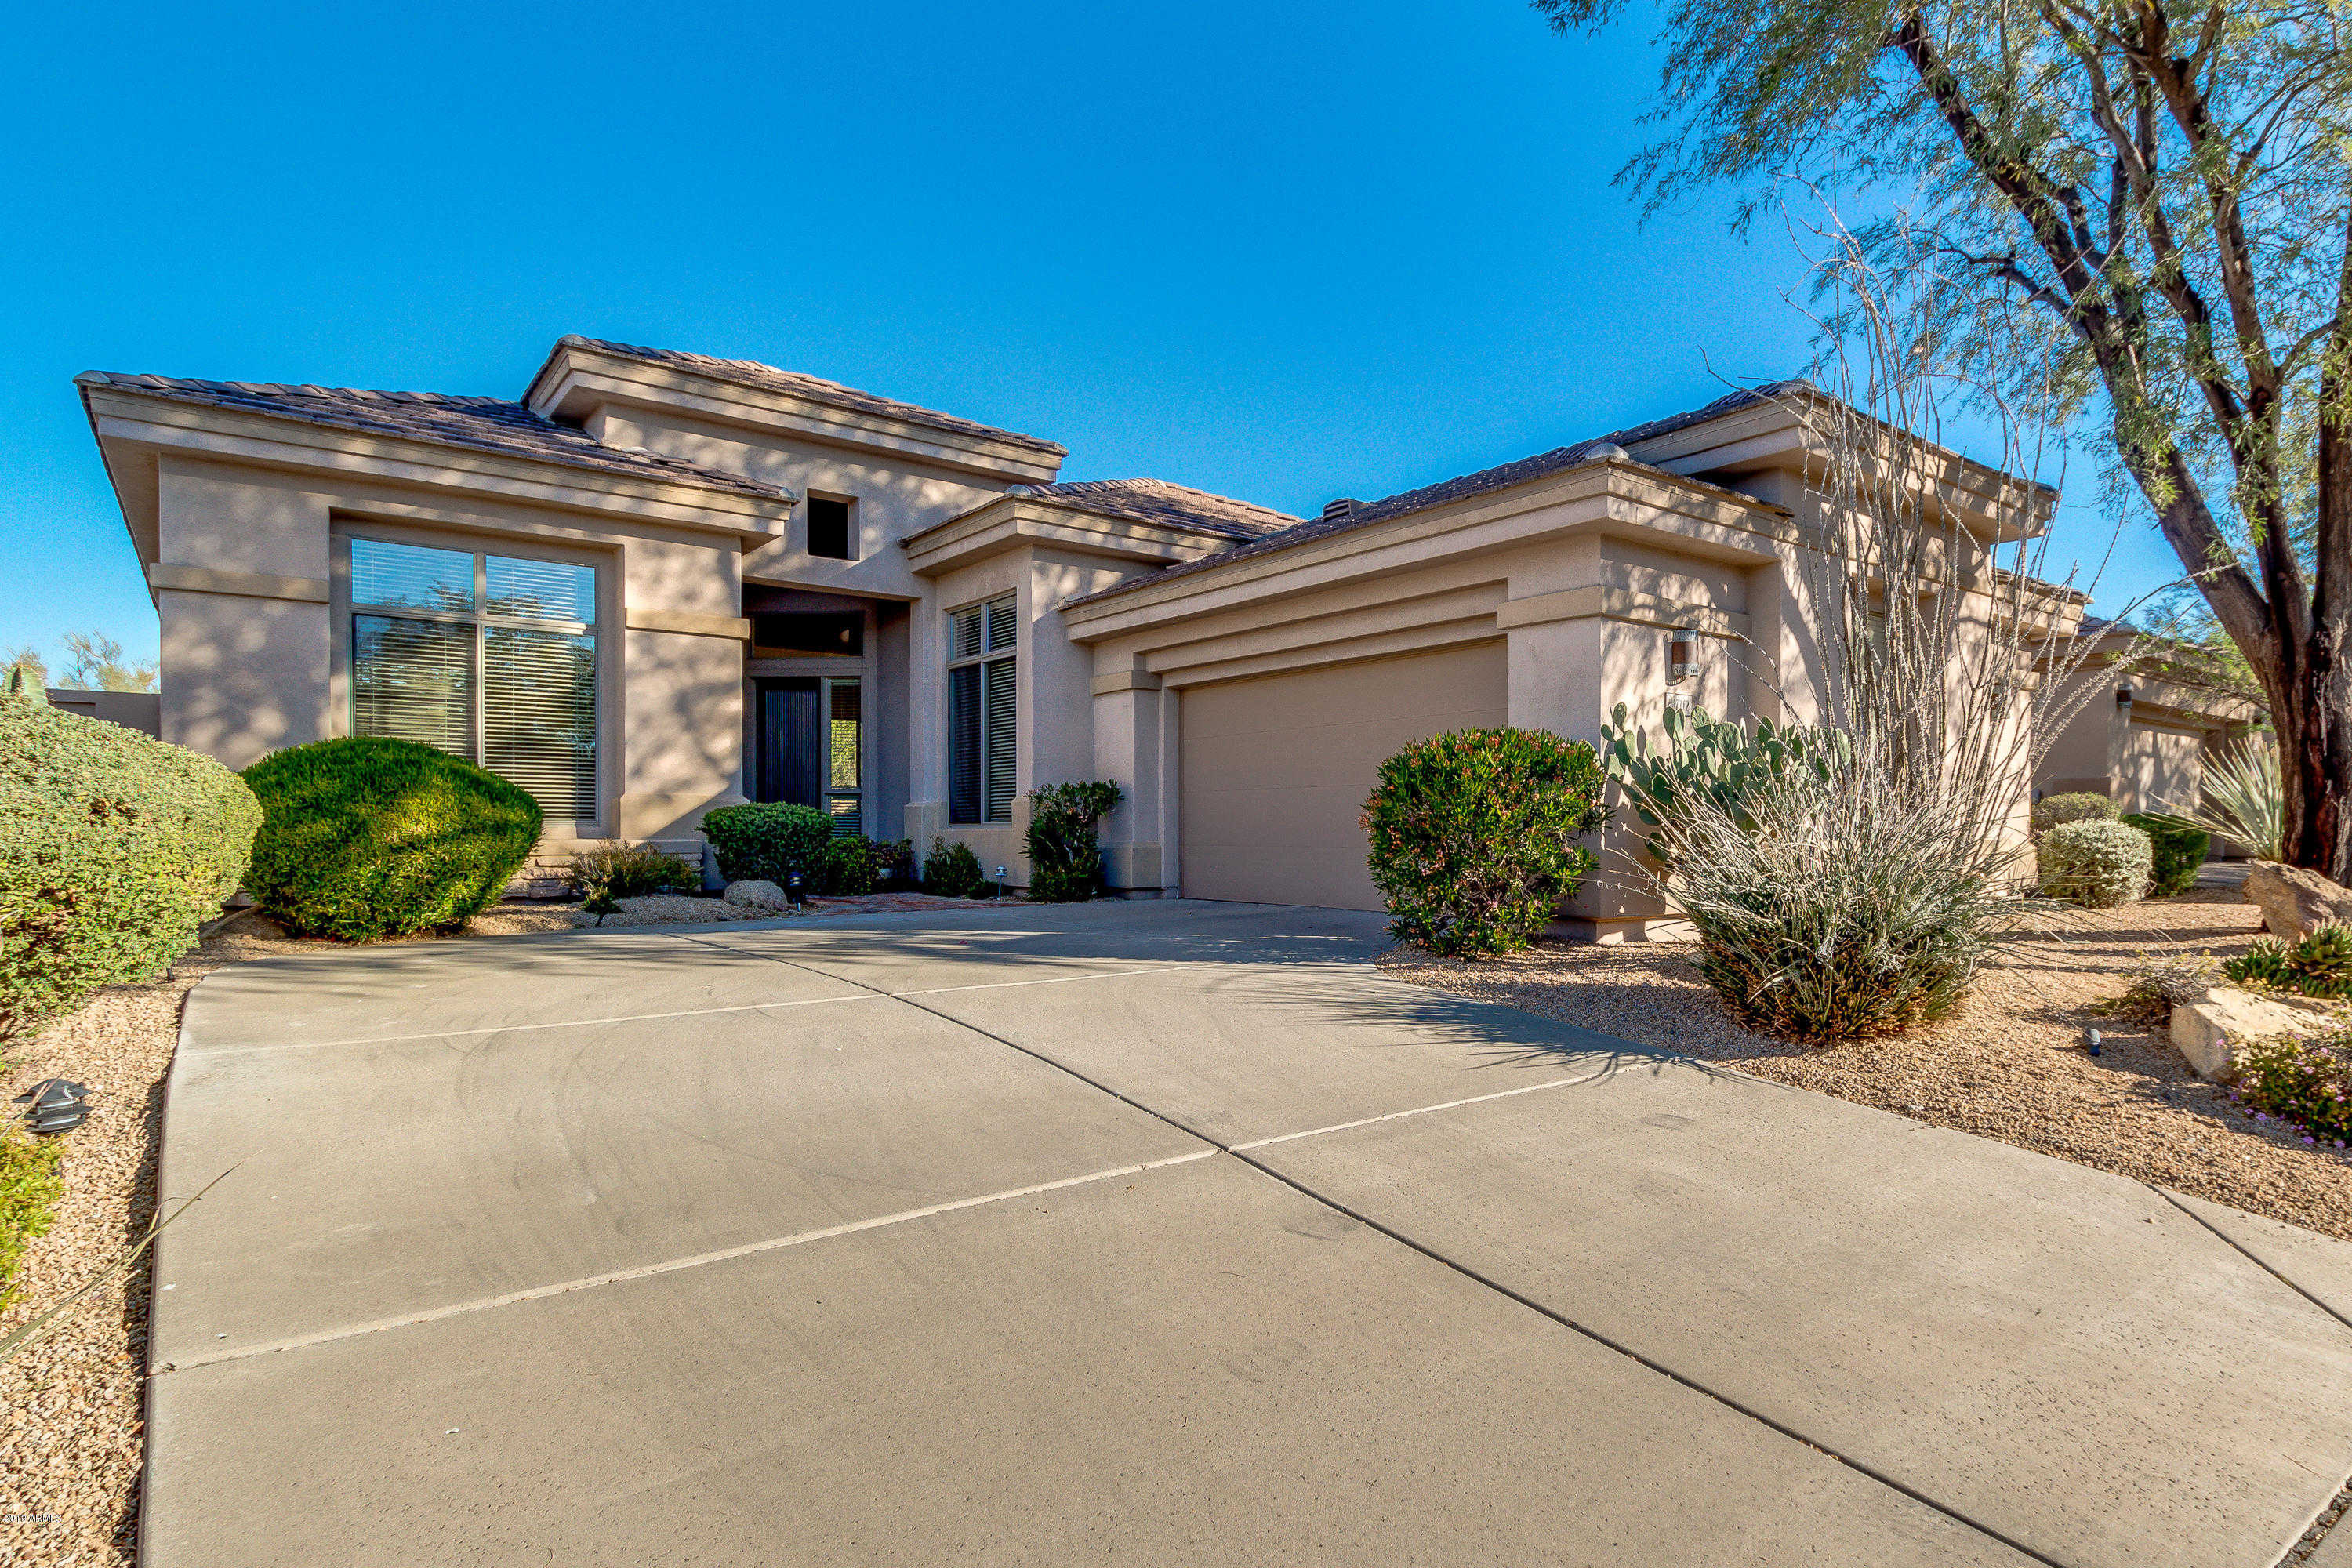 $599,500 - 3Br/2Ba - Home for Sale in Grayhawk Parcels 2a,2b And 2c, Scottsdale